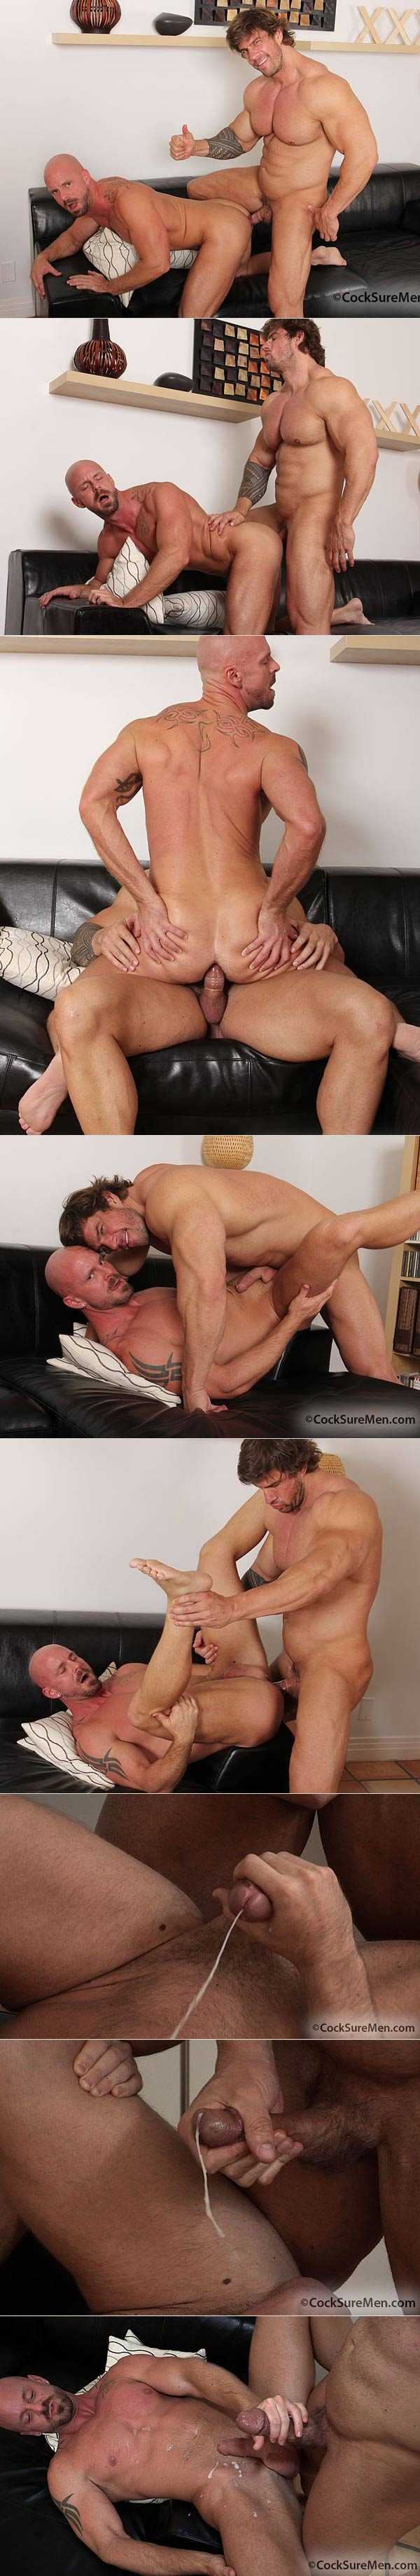 zeb atlas mitch vaughn